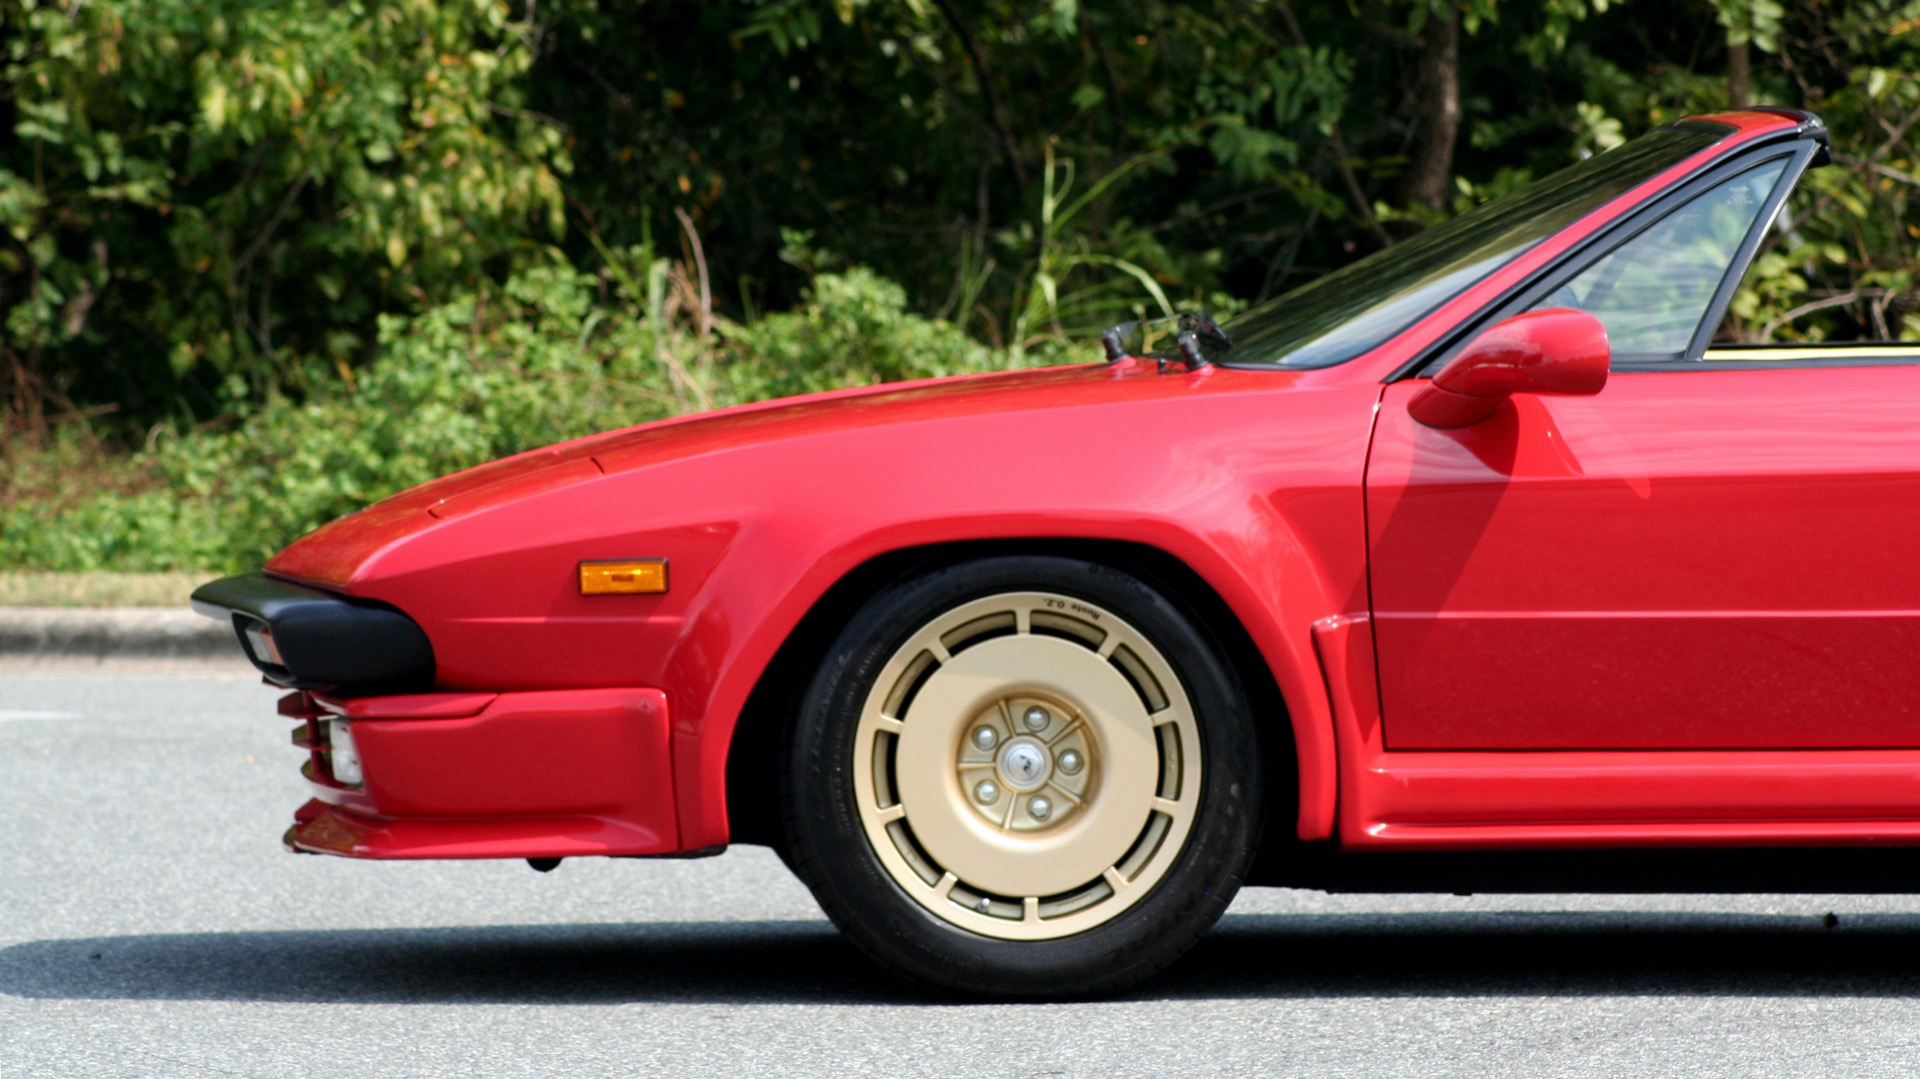 Used 1988 Lamborghini Jalpa 3.5 / 5-Speed Man / Low Miles / Excellent Condition for sale $108,995 at Formula Imports in Charlotte NC 28227 5